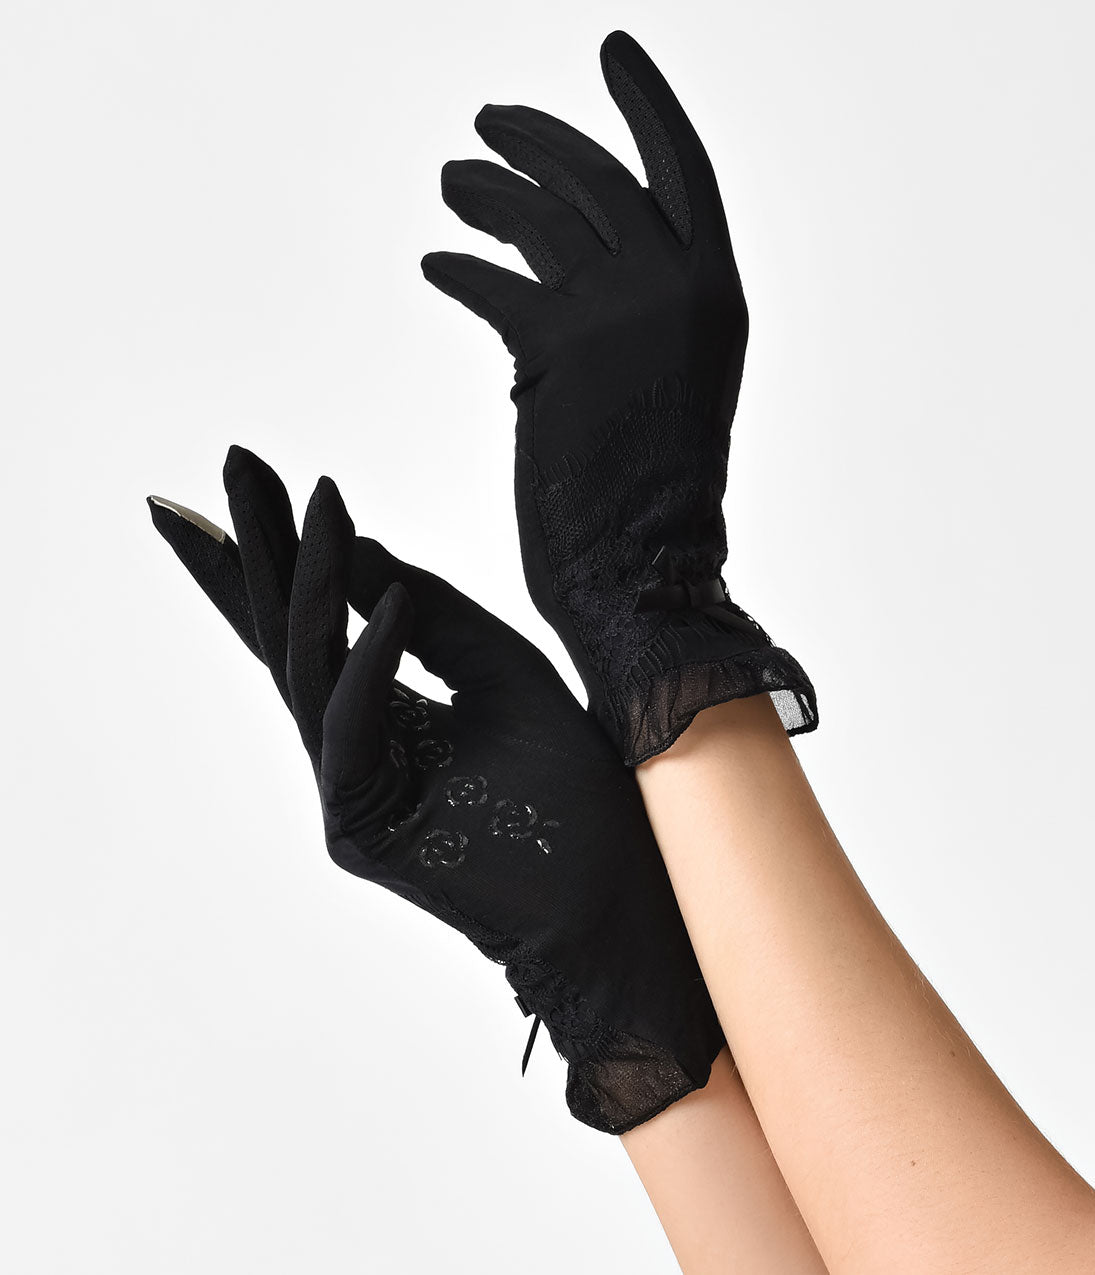 Vintage Style Gloves- Long, Wrist, Evening, Day, Leather, Lace Unique Vintage Black Bow Lace  Frill Wrist Gloves $20.00 AT vintagedancer.com